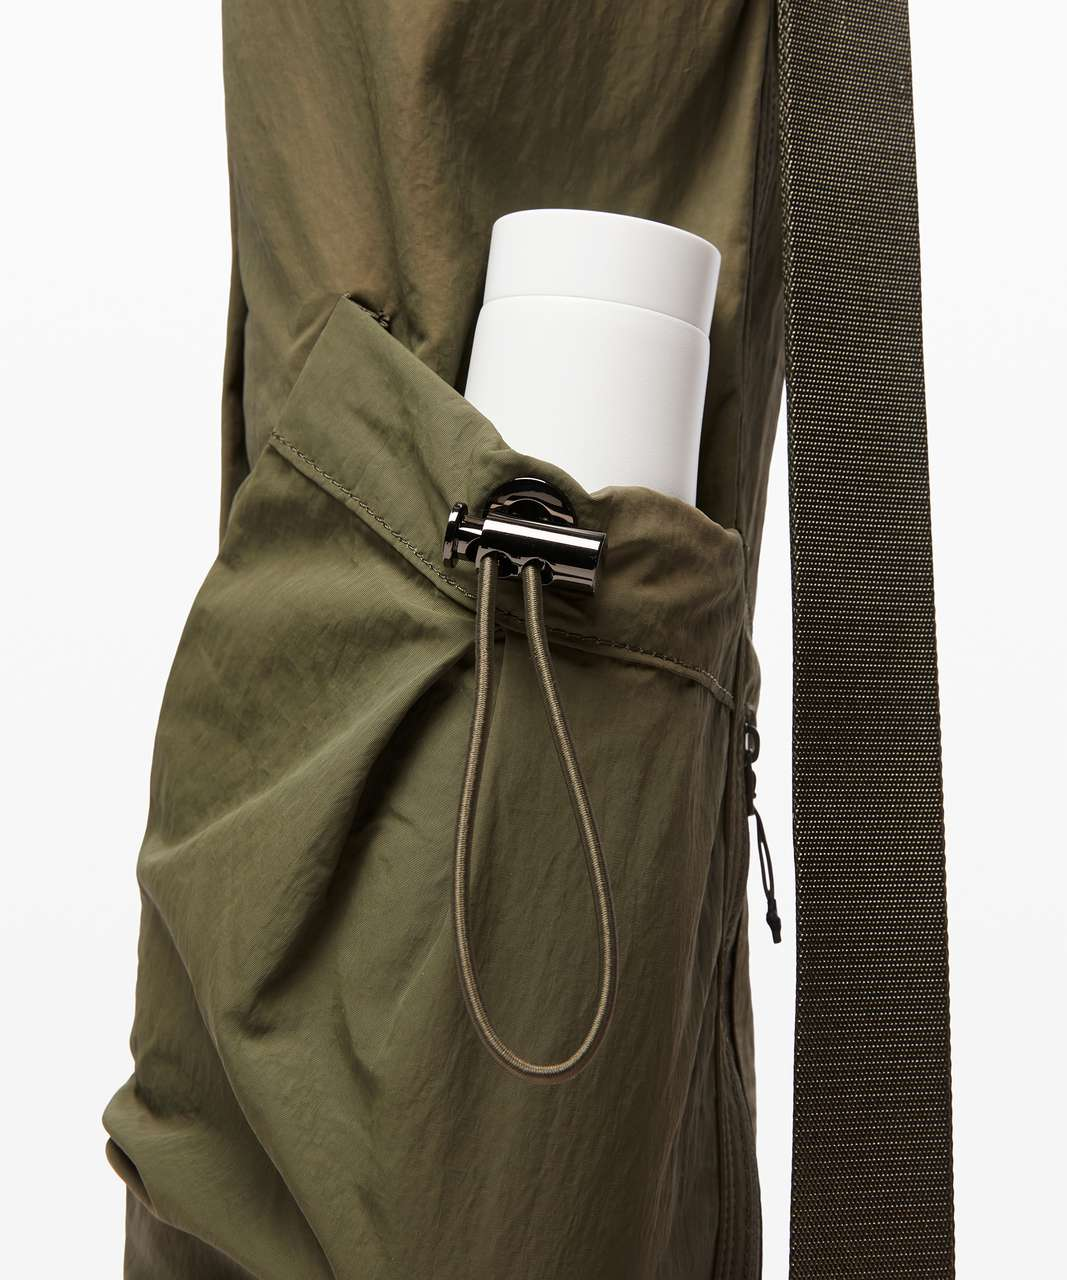 Lululemon The Yoga Mat Bag *16L - Medium Olive